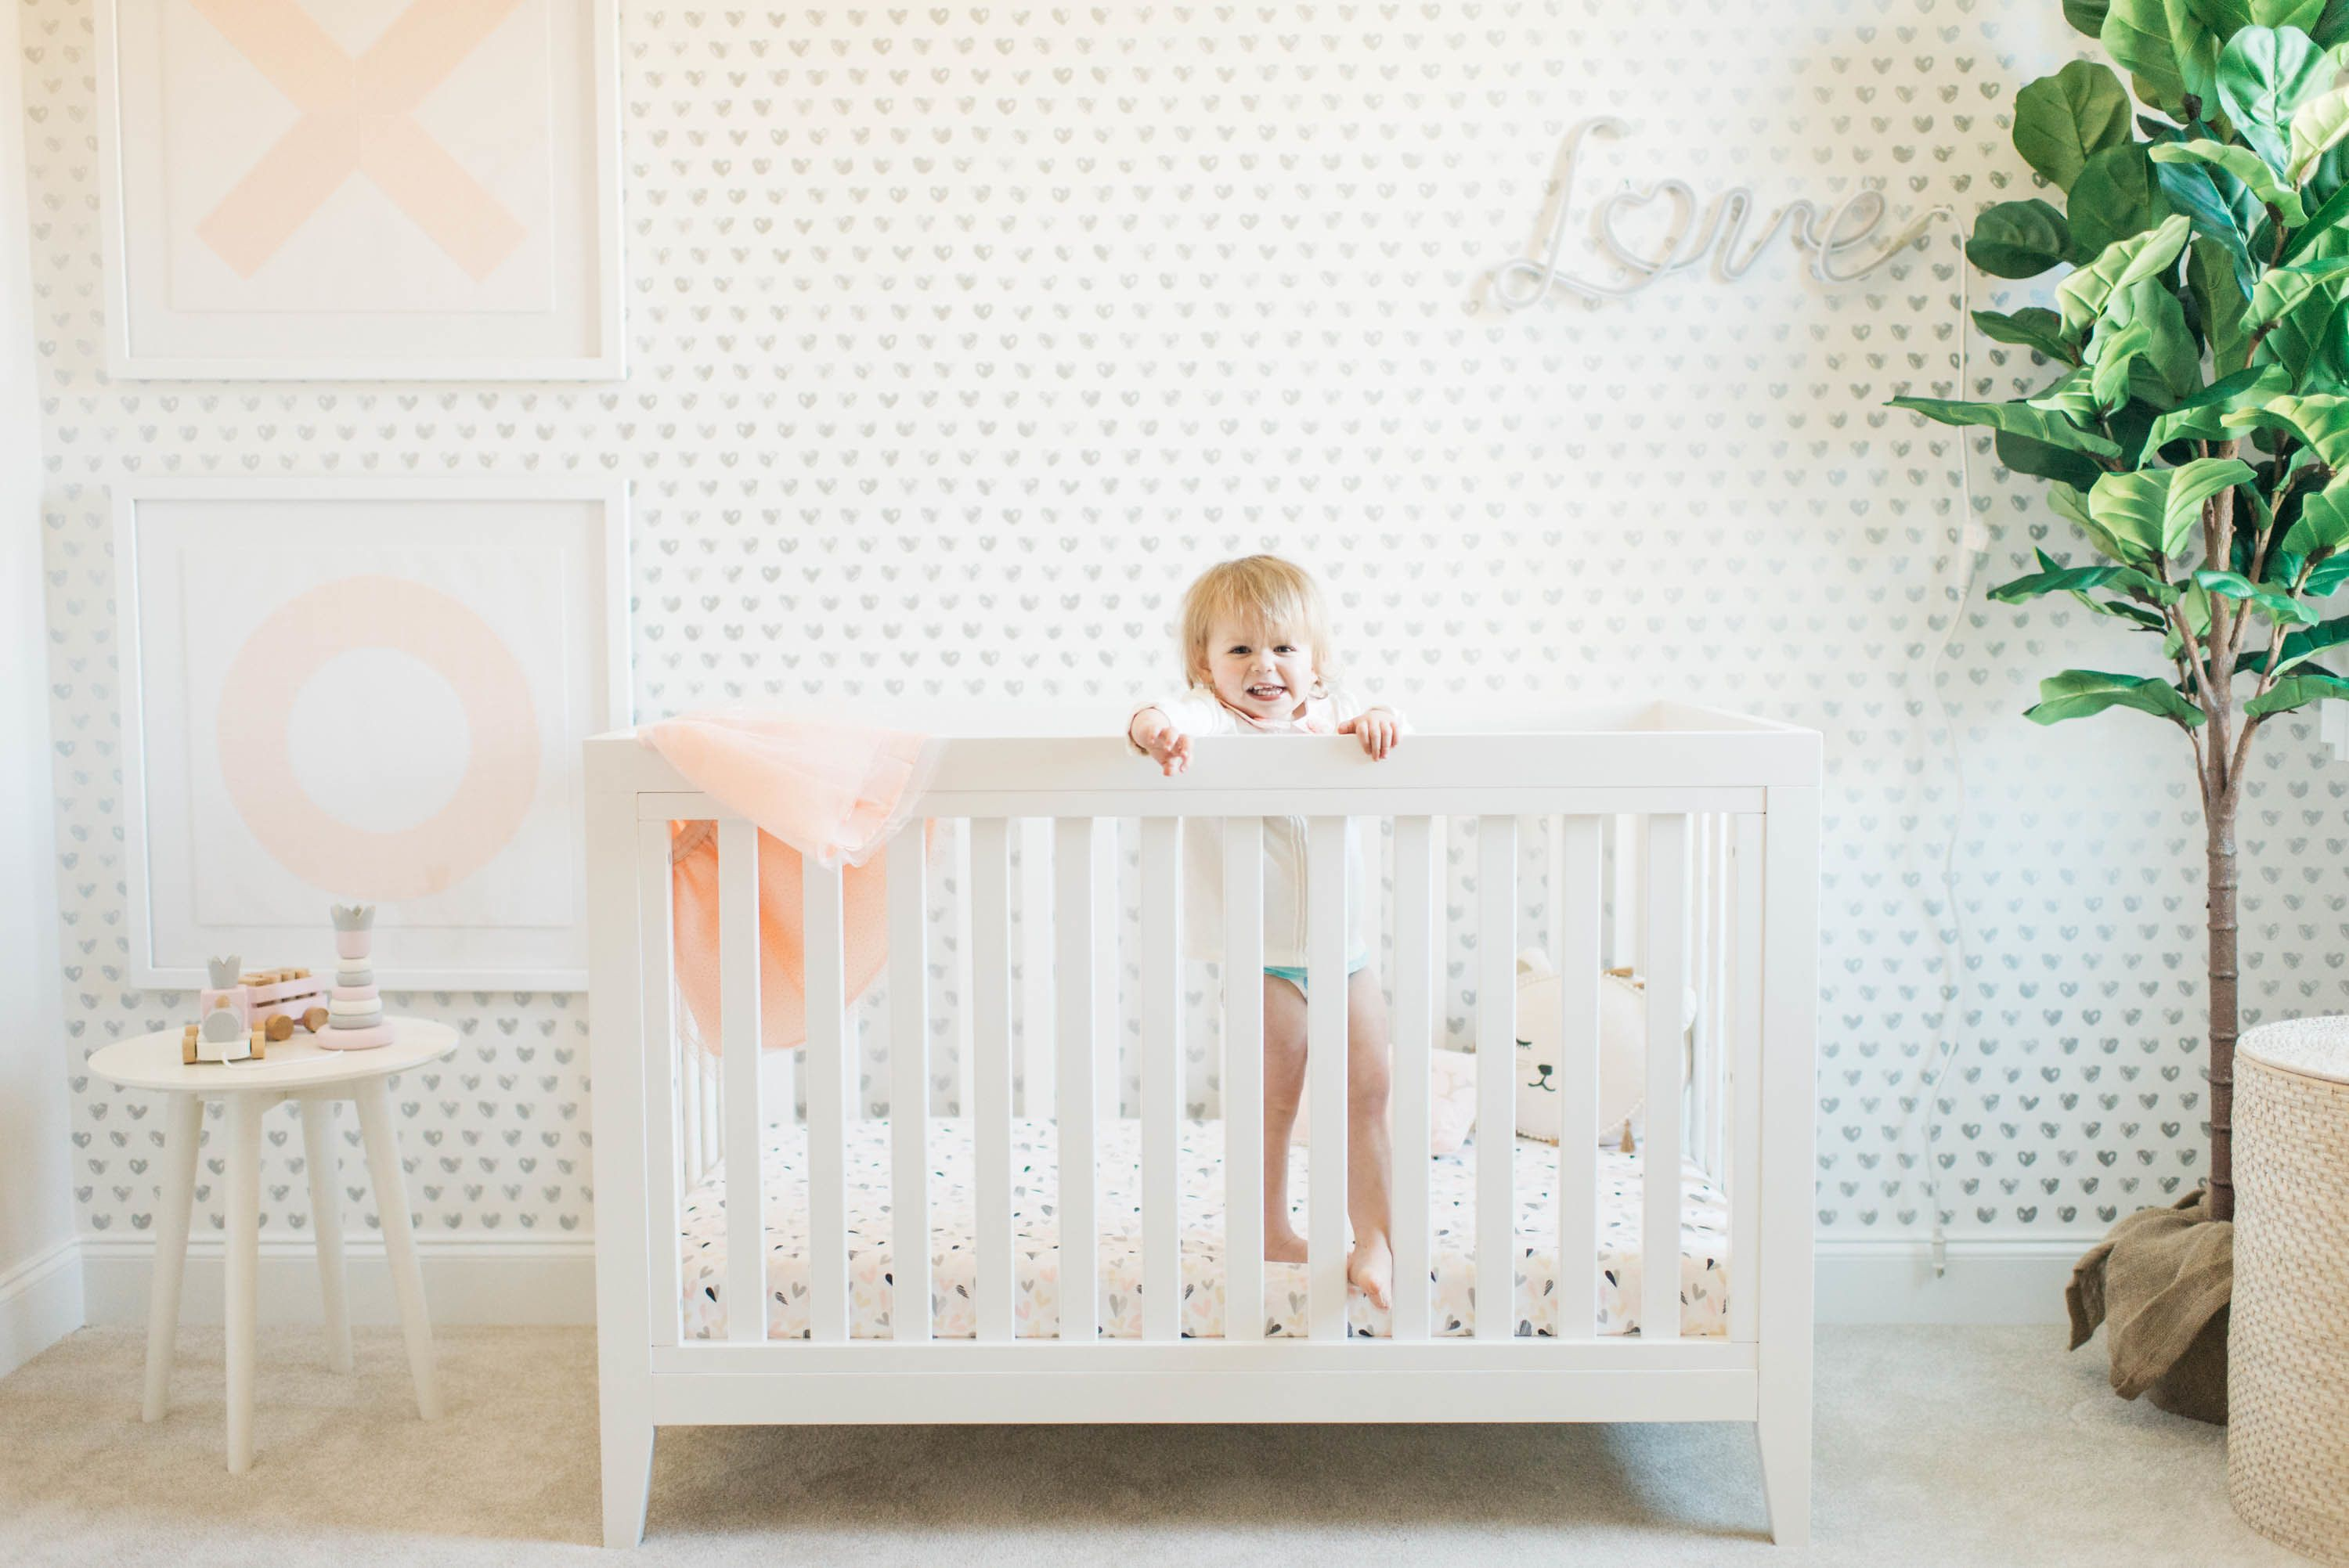 Pink, Gray and White Girl's Nursery from @projectnursery and featuring fab pieces from @potterybarnkids. #PNpartner